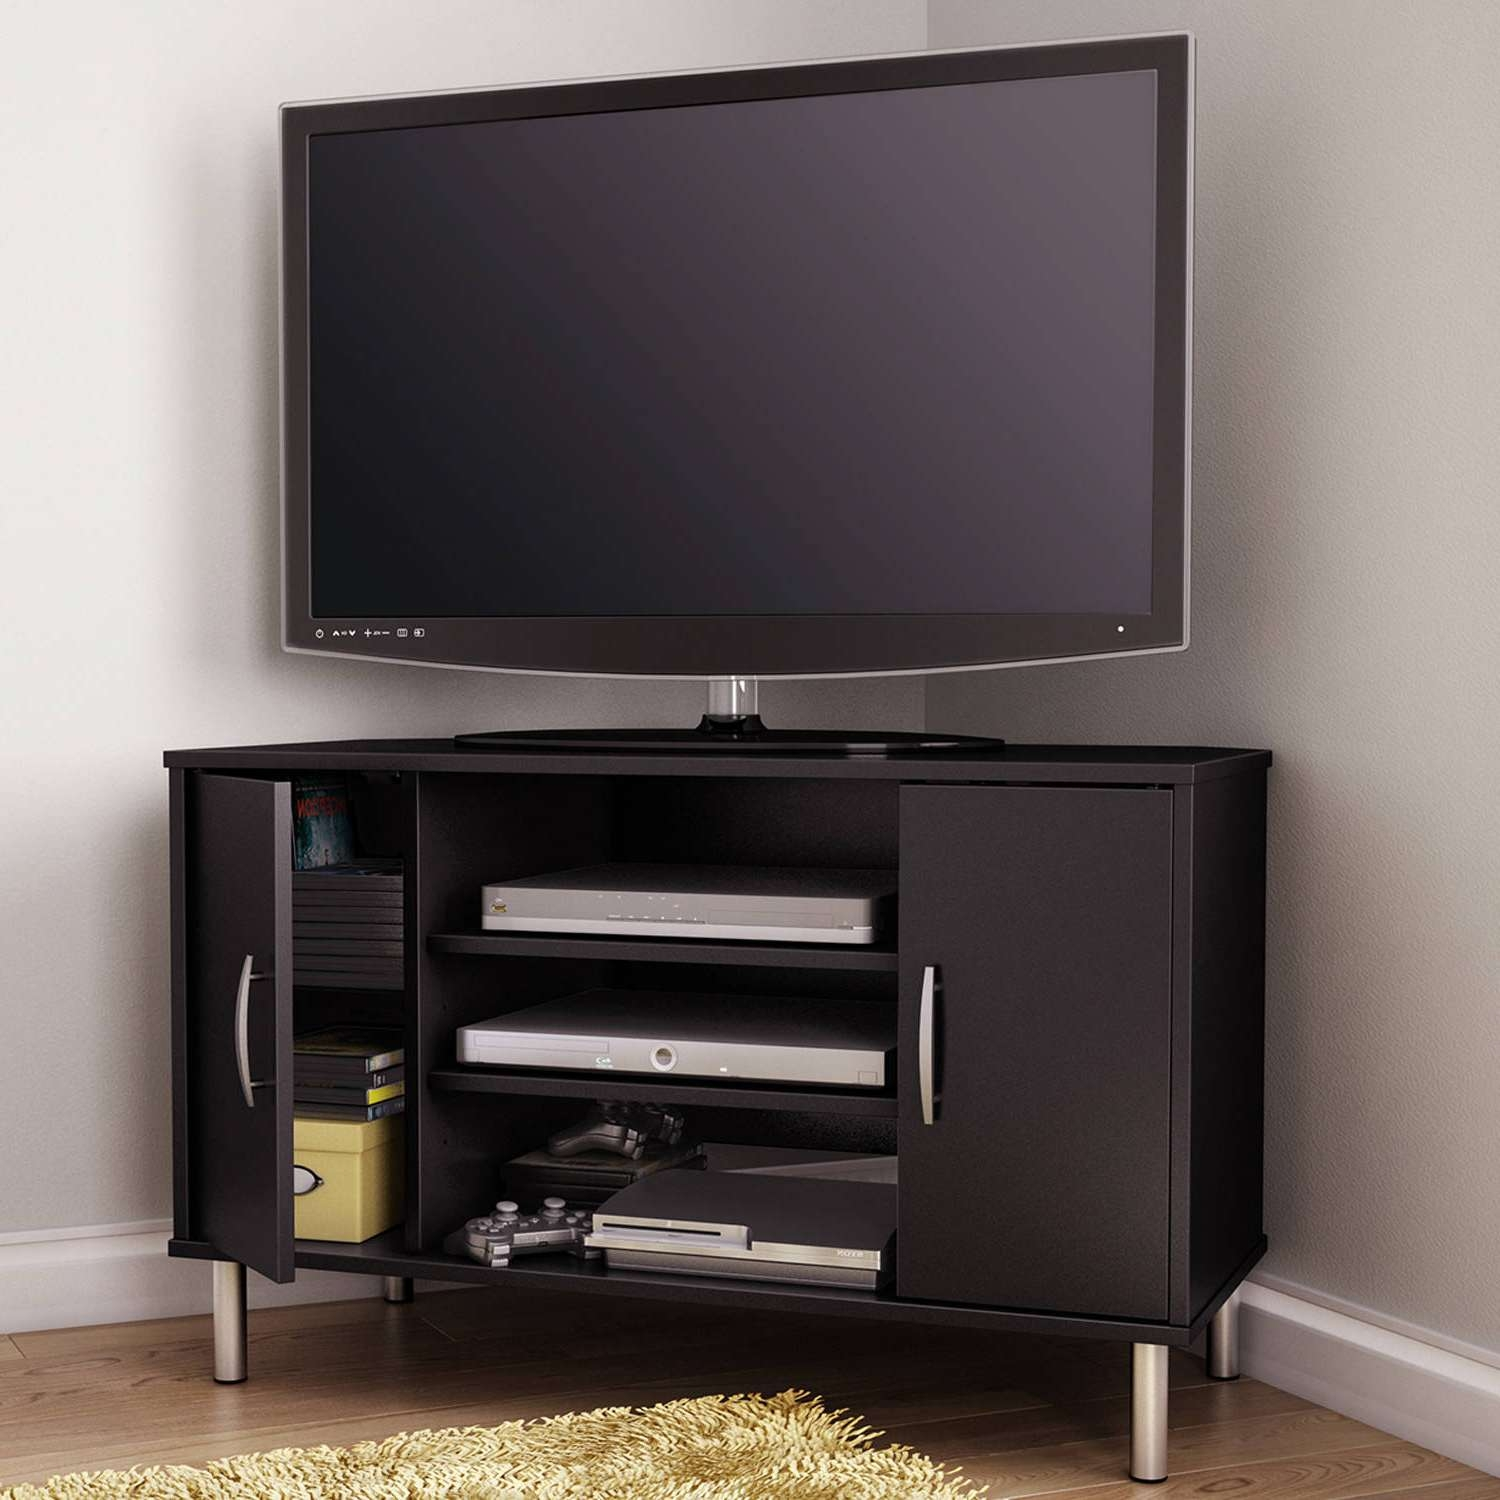 Storage Cabinets Ideas : Corner Tv Cabinet Cream Choosing The Intended For Cream Corner Tv Stands (View 7 of 15)